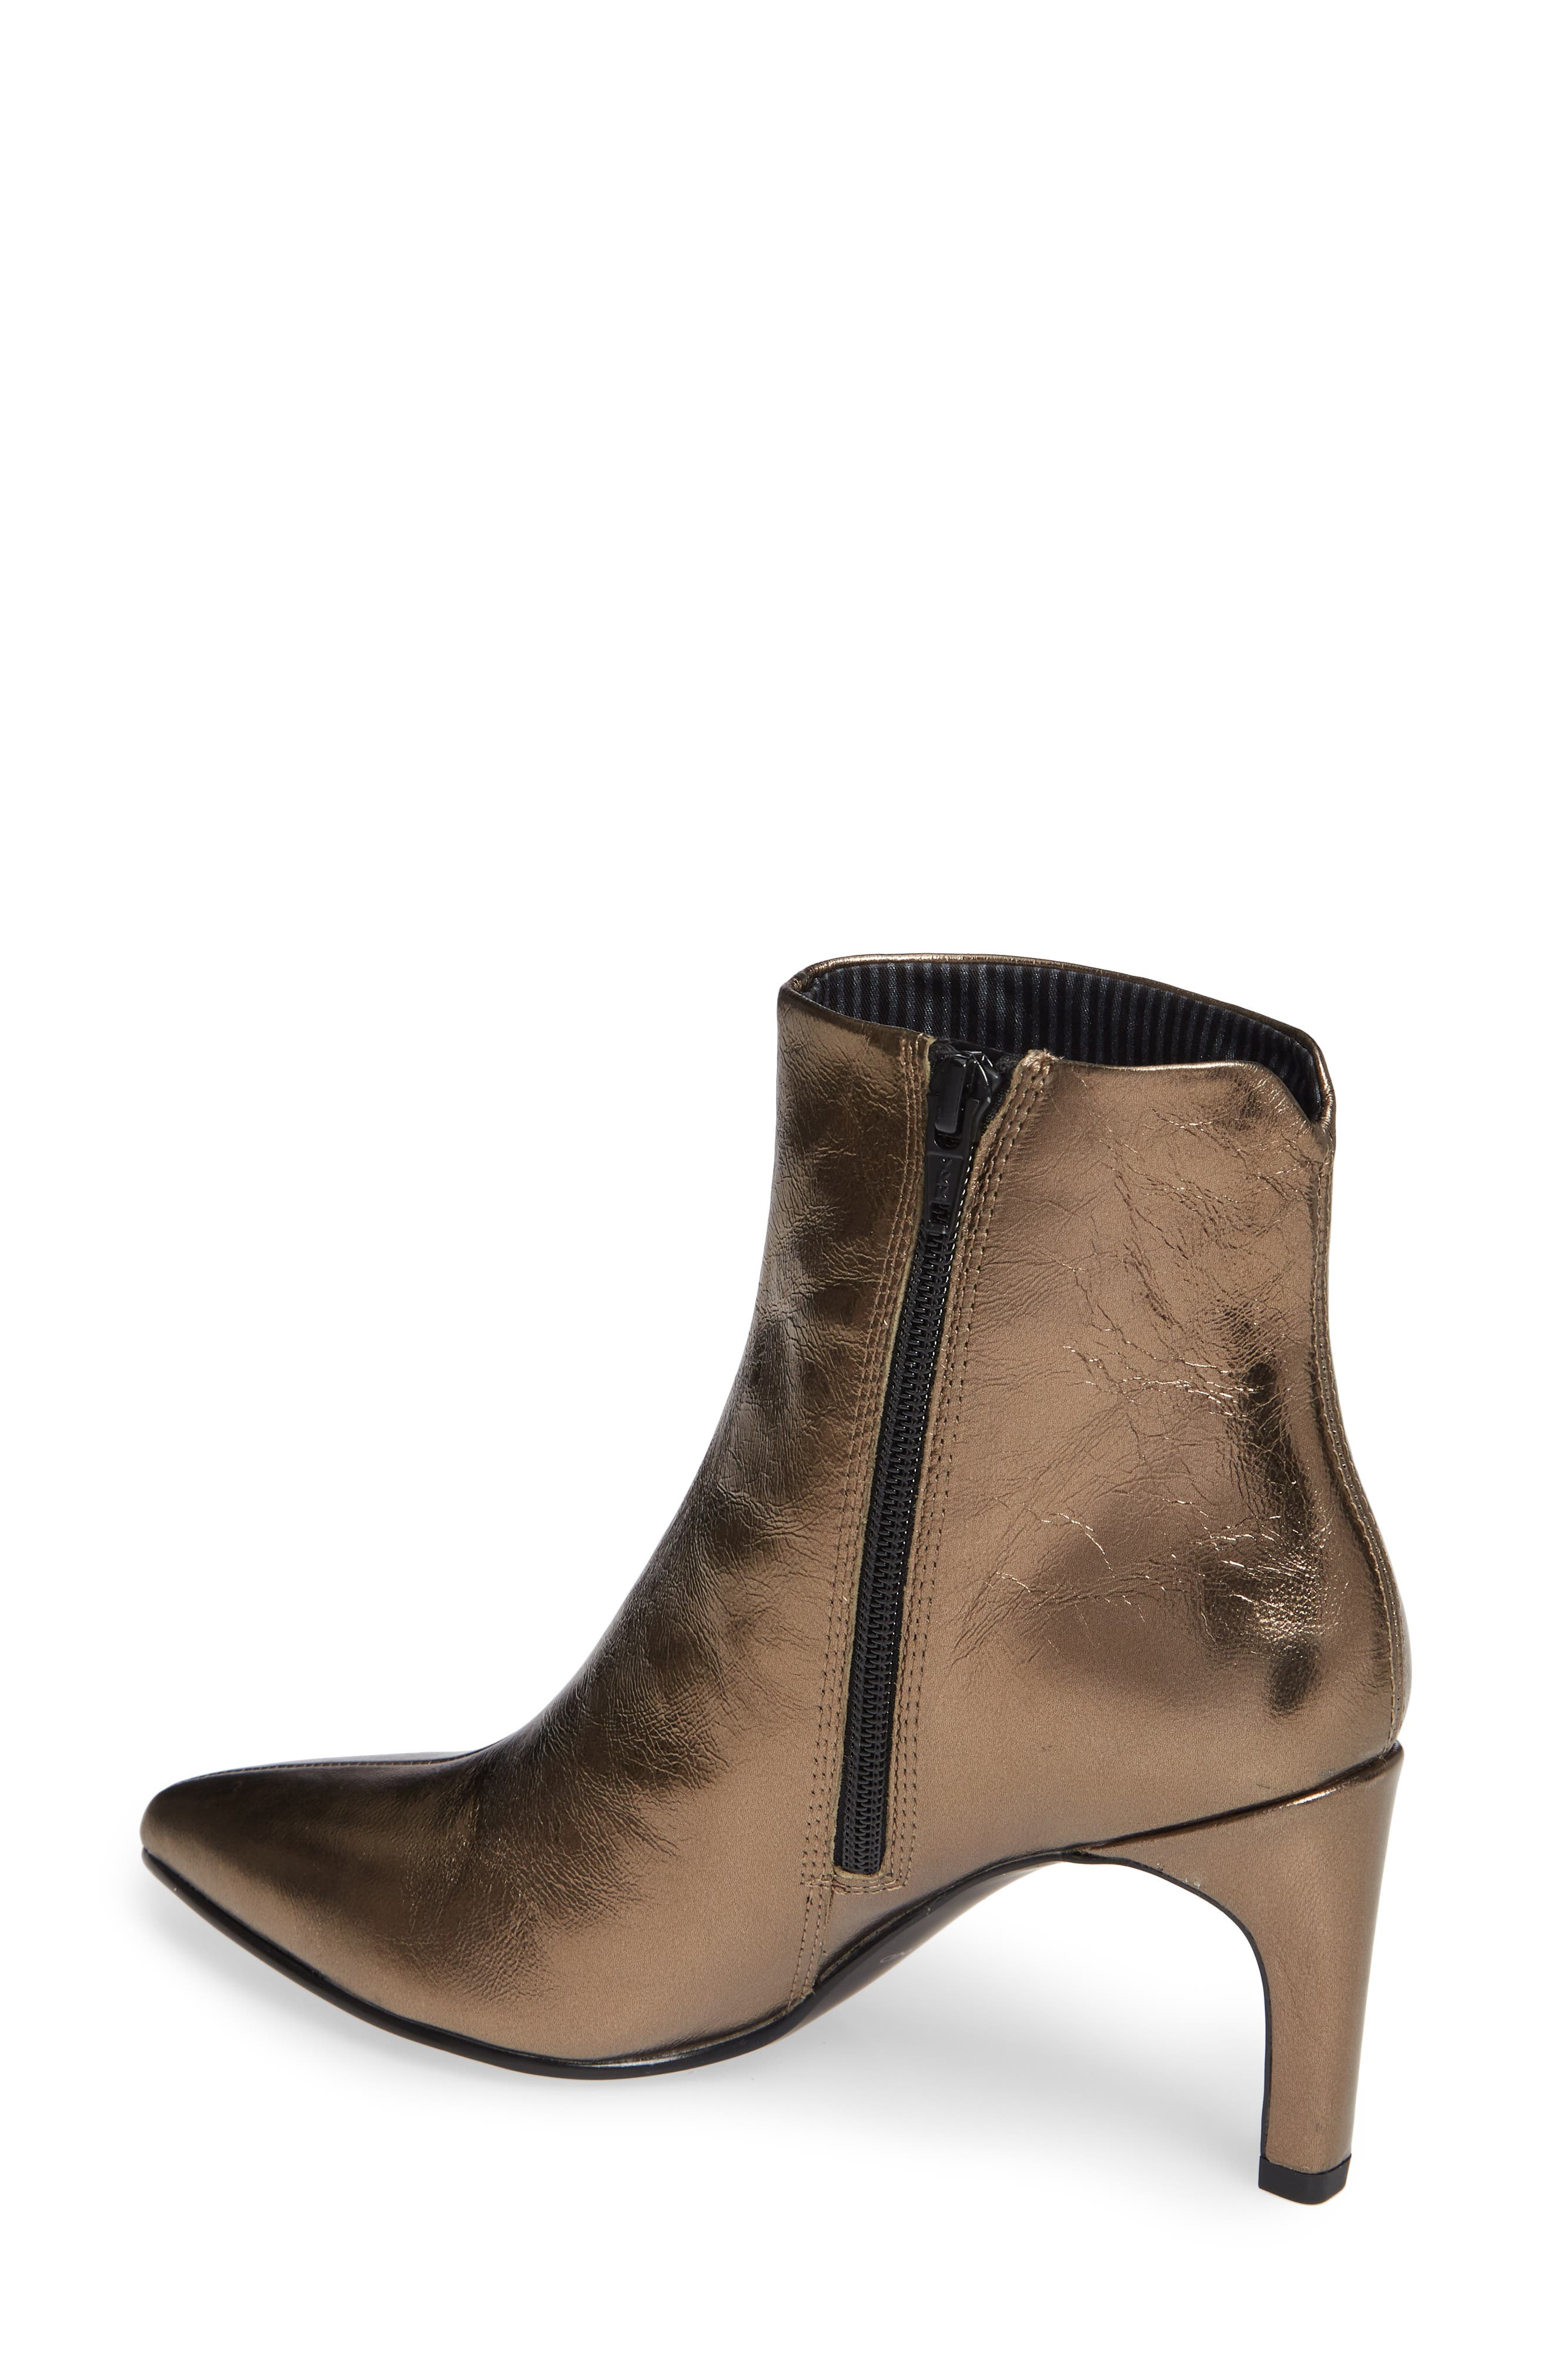 VAGABOND, Shoemakers Whitney Pointy Toe Bootie, Alternate thumbnail 2, color, BRONZE LEATHER